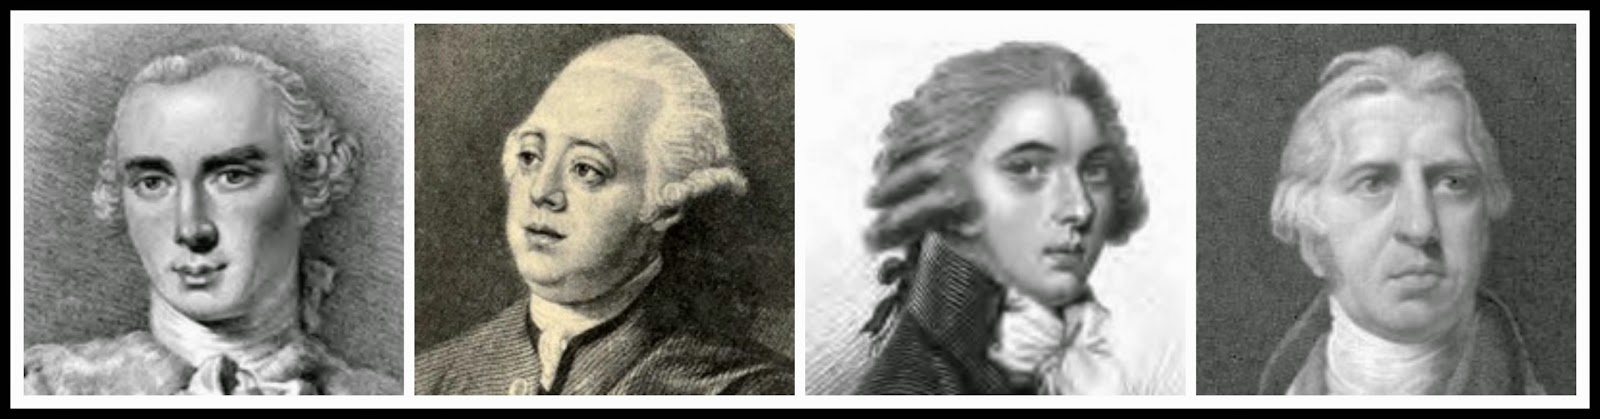 4 Prime Ministers of George III  From left to right: Lord Bute, Lord North,William Pitt the Younger, Lord Liverpoo